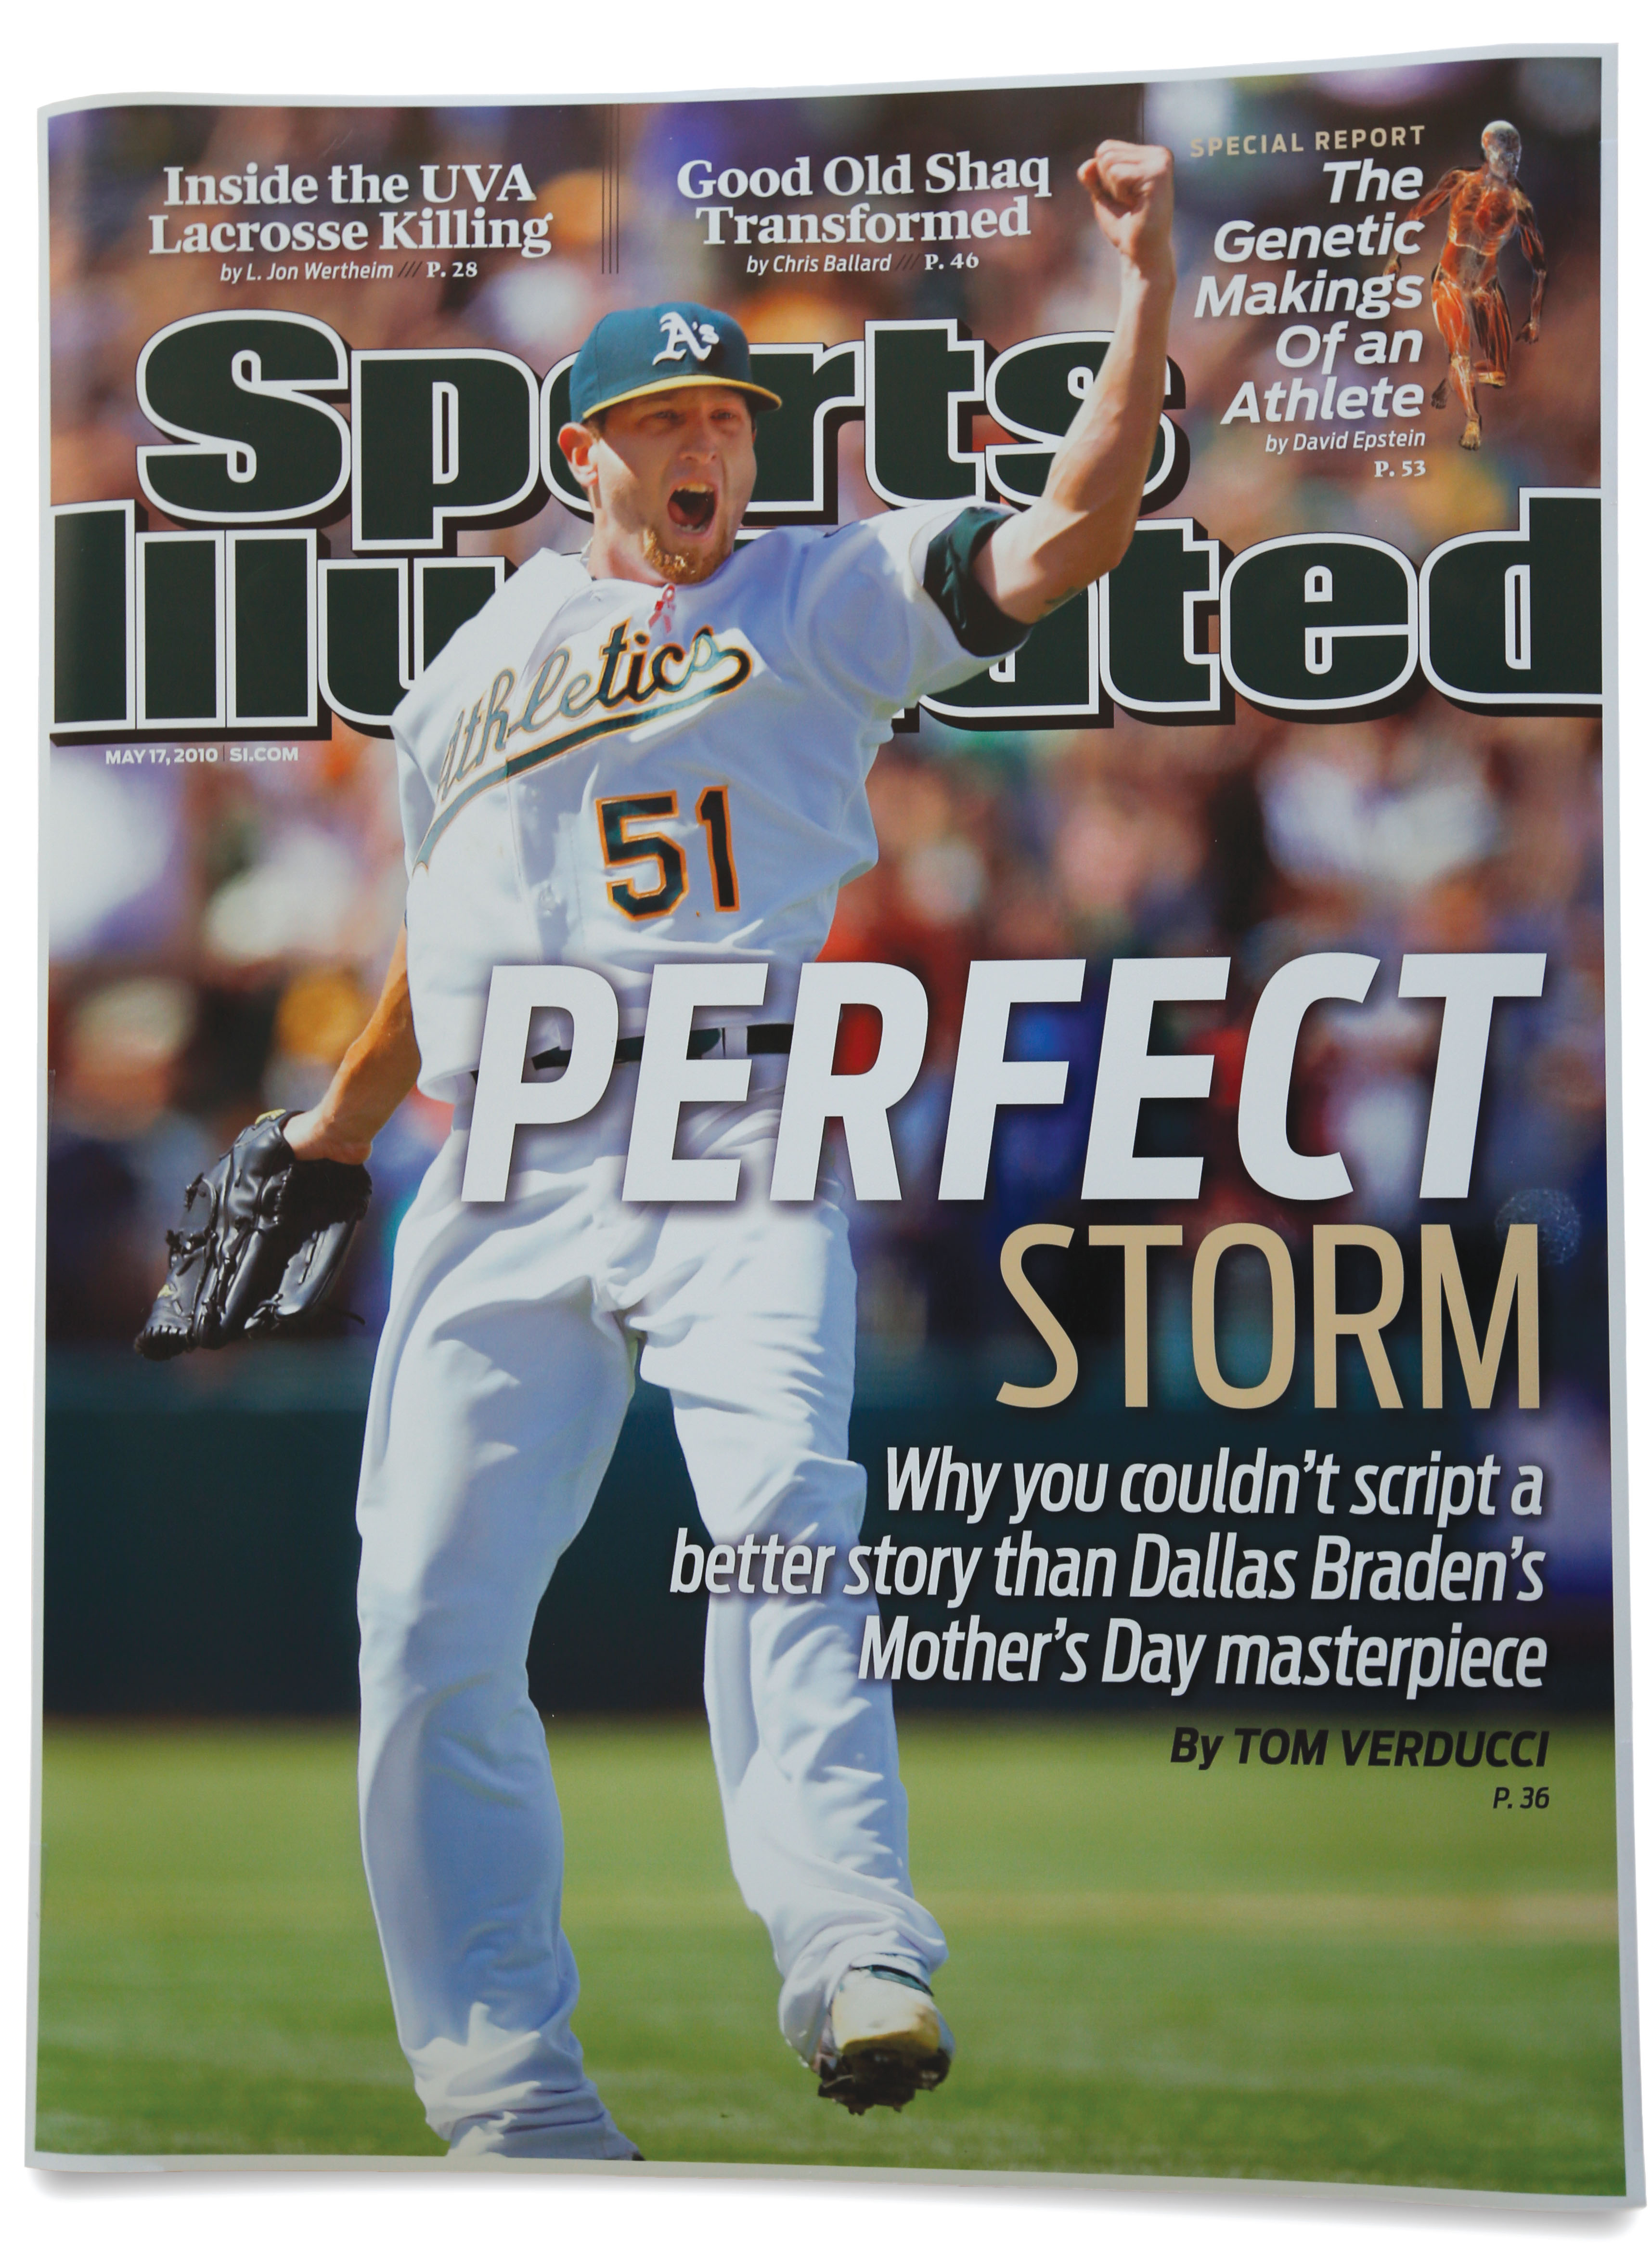 a sports illustrated cover of oakland athletics pitcher dallas braden celebrating after winning a baseball game